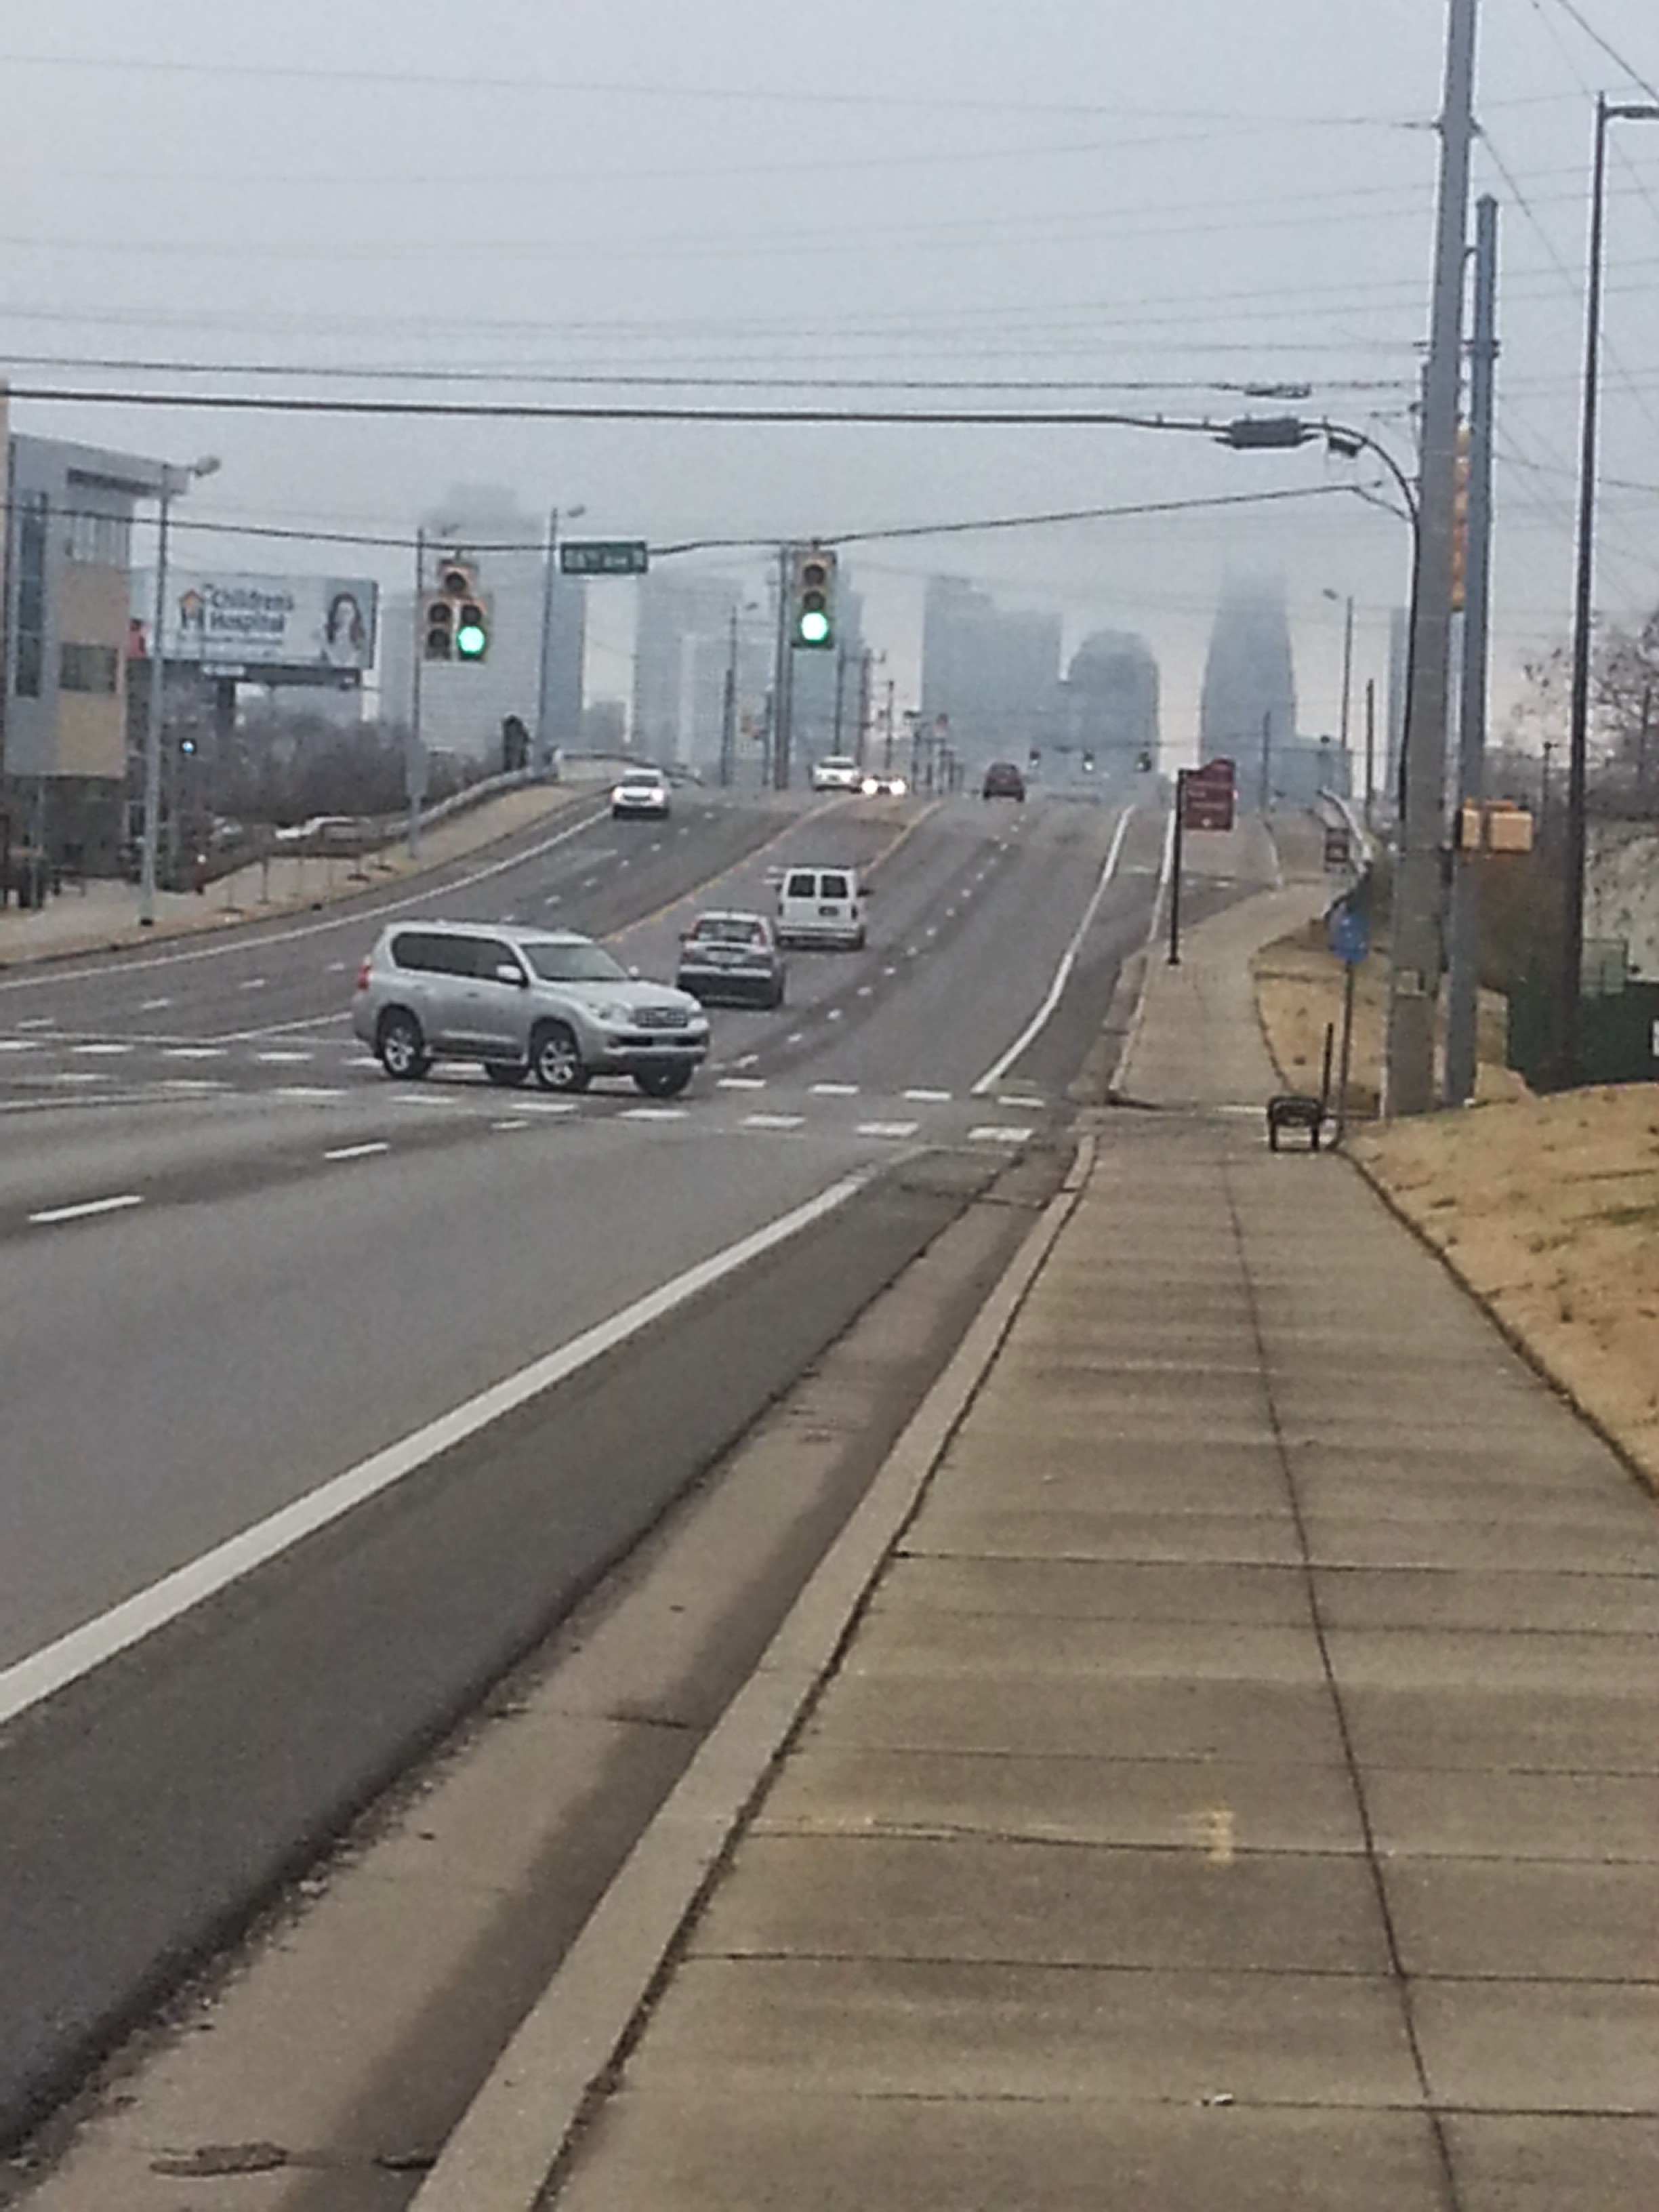 Foggy Nashville skyline on one of my long walks across town.